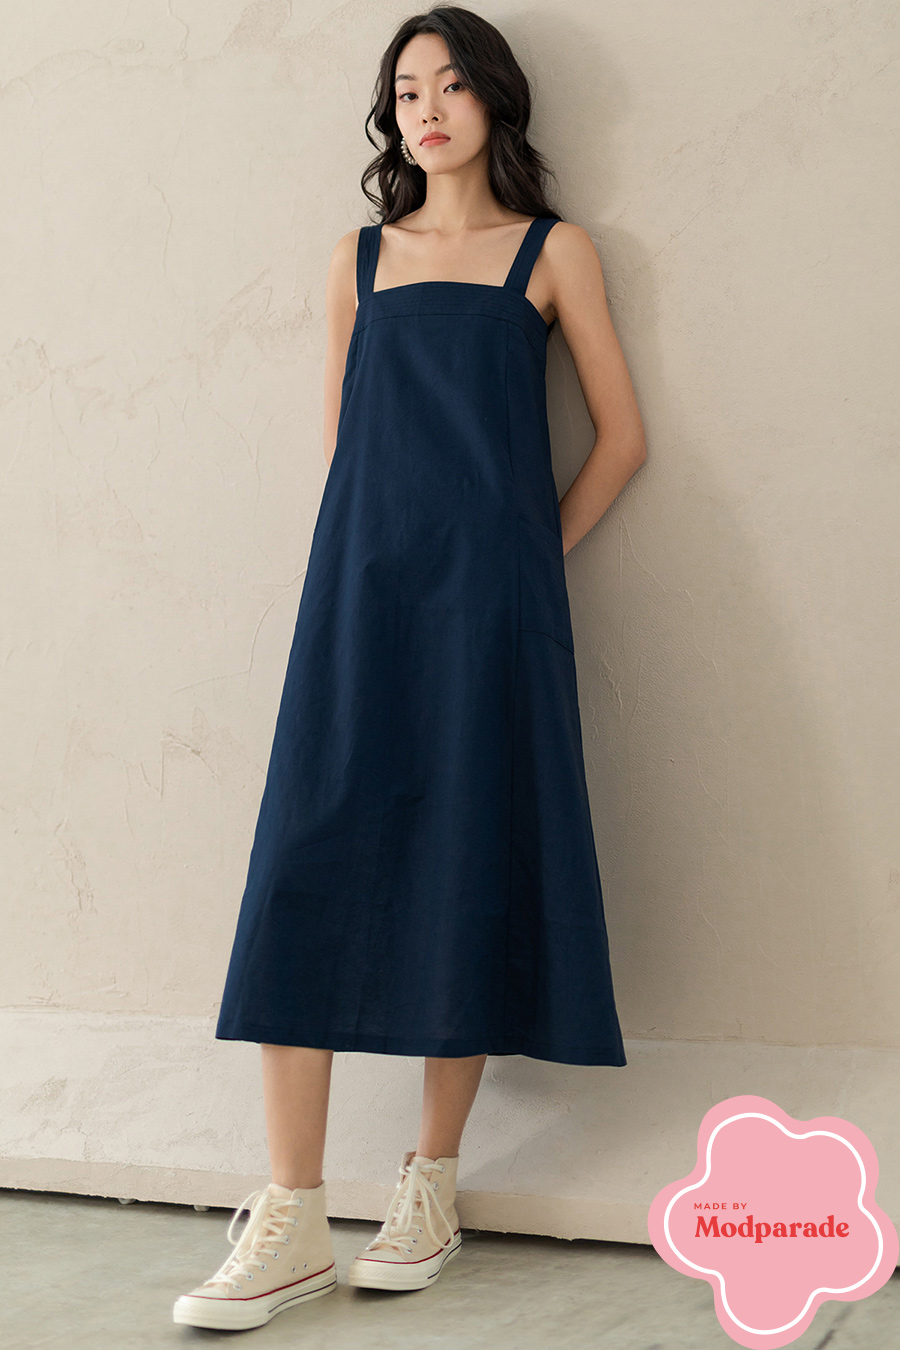 VALLEE DRESS - NAVY [BY MODPARADE]